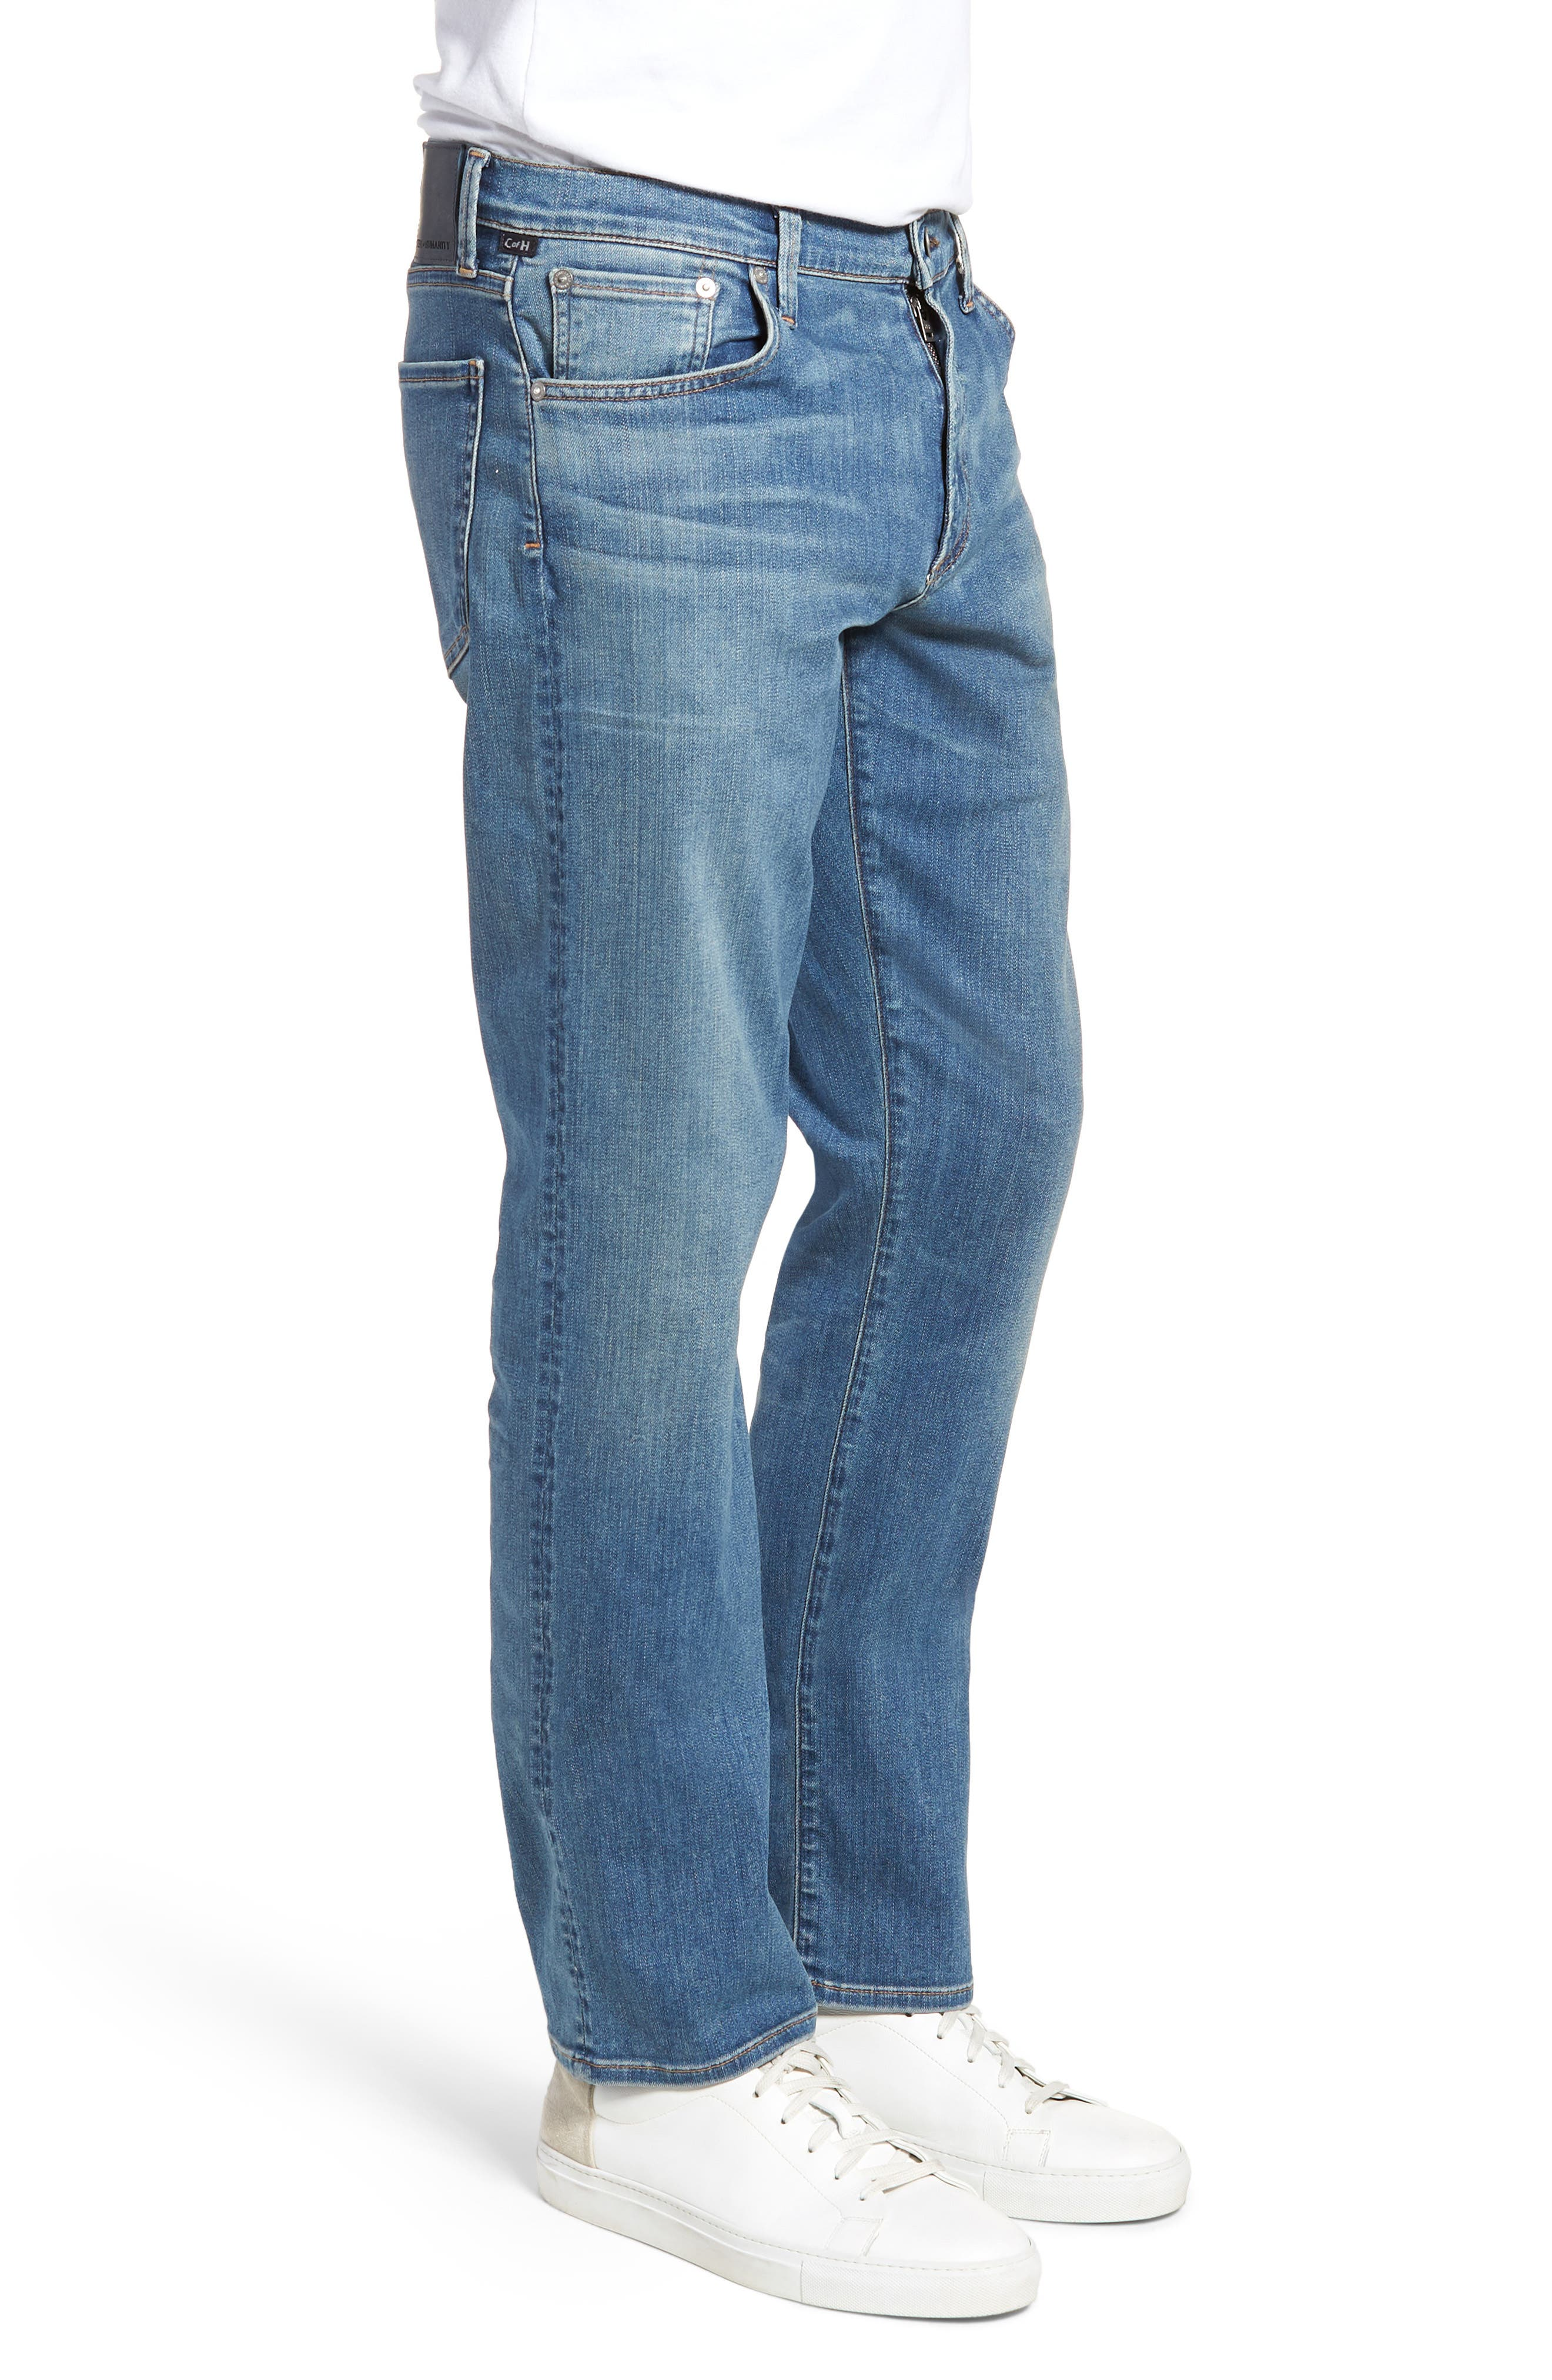 Perform - Gage Slim Straight Leg Jeans,                             Alternate thumbnail 3, color,                             456